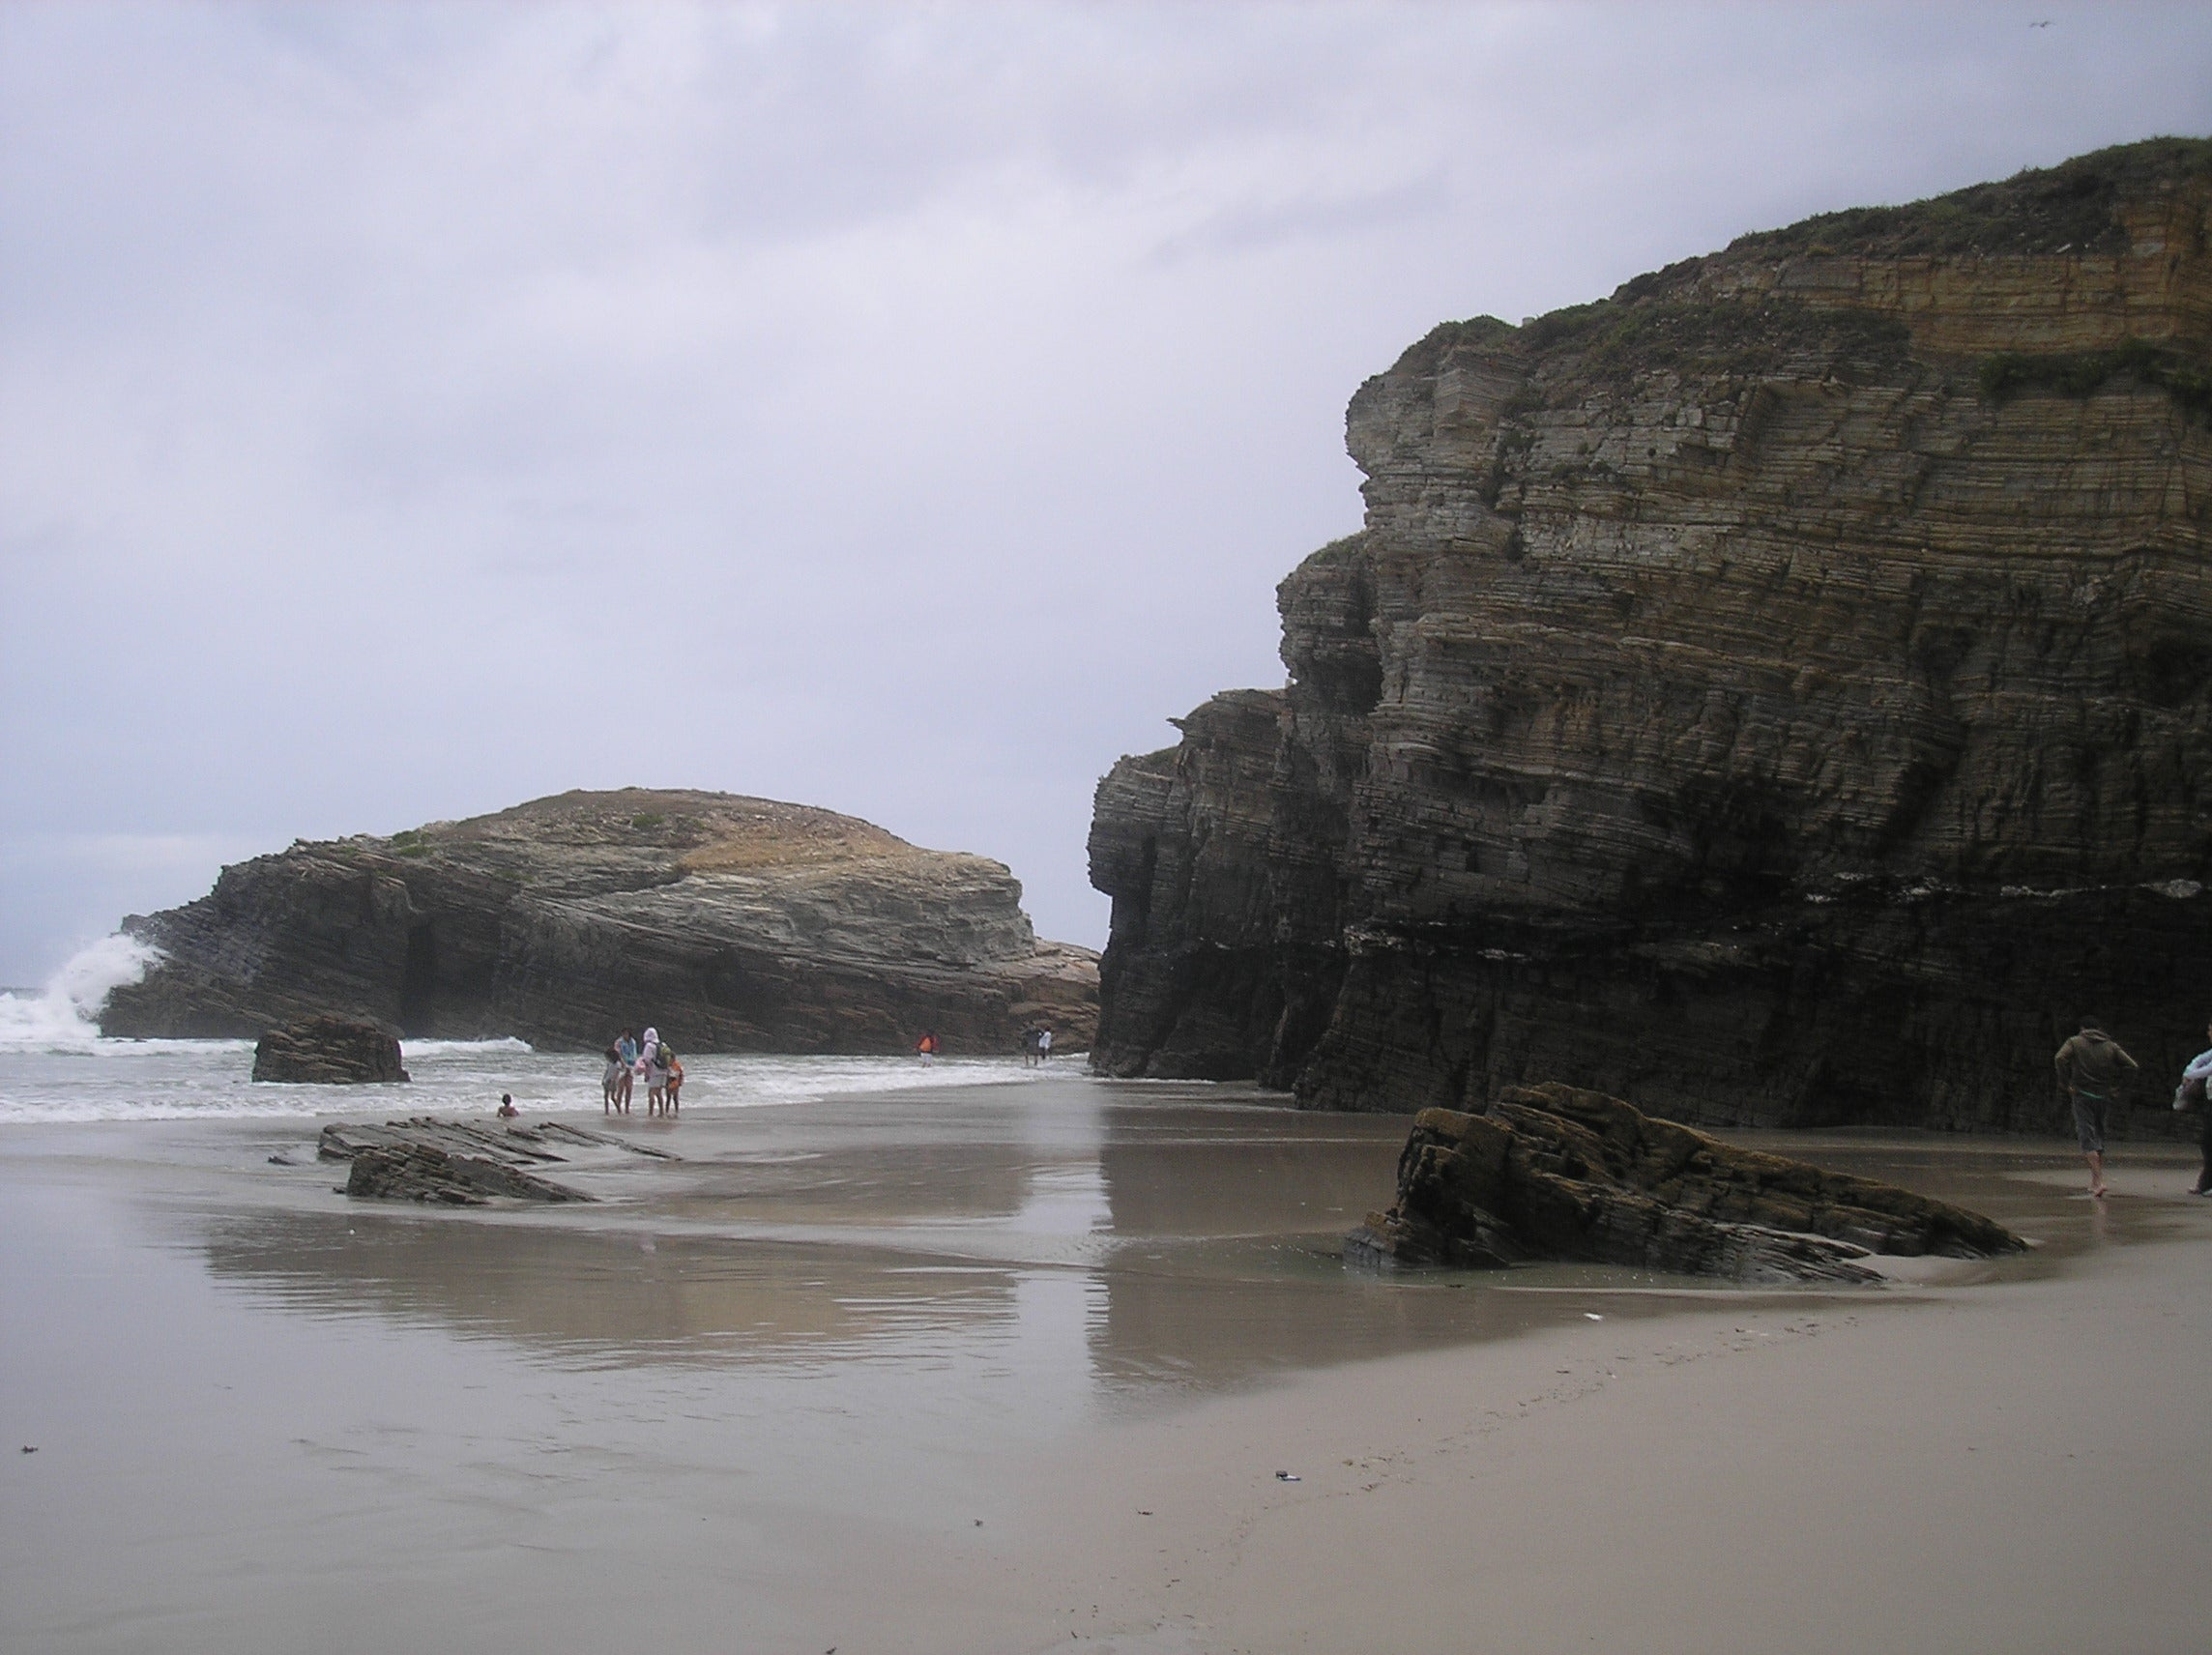 Orilla en Playa de Las Catedrales - As Catedrais